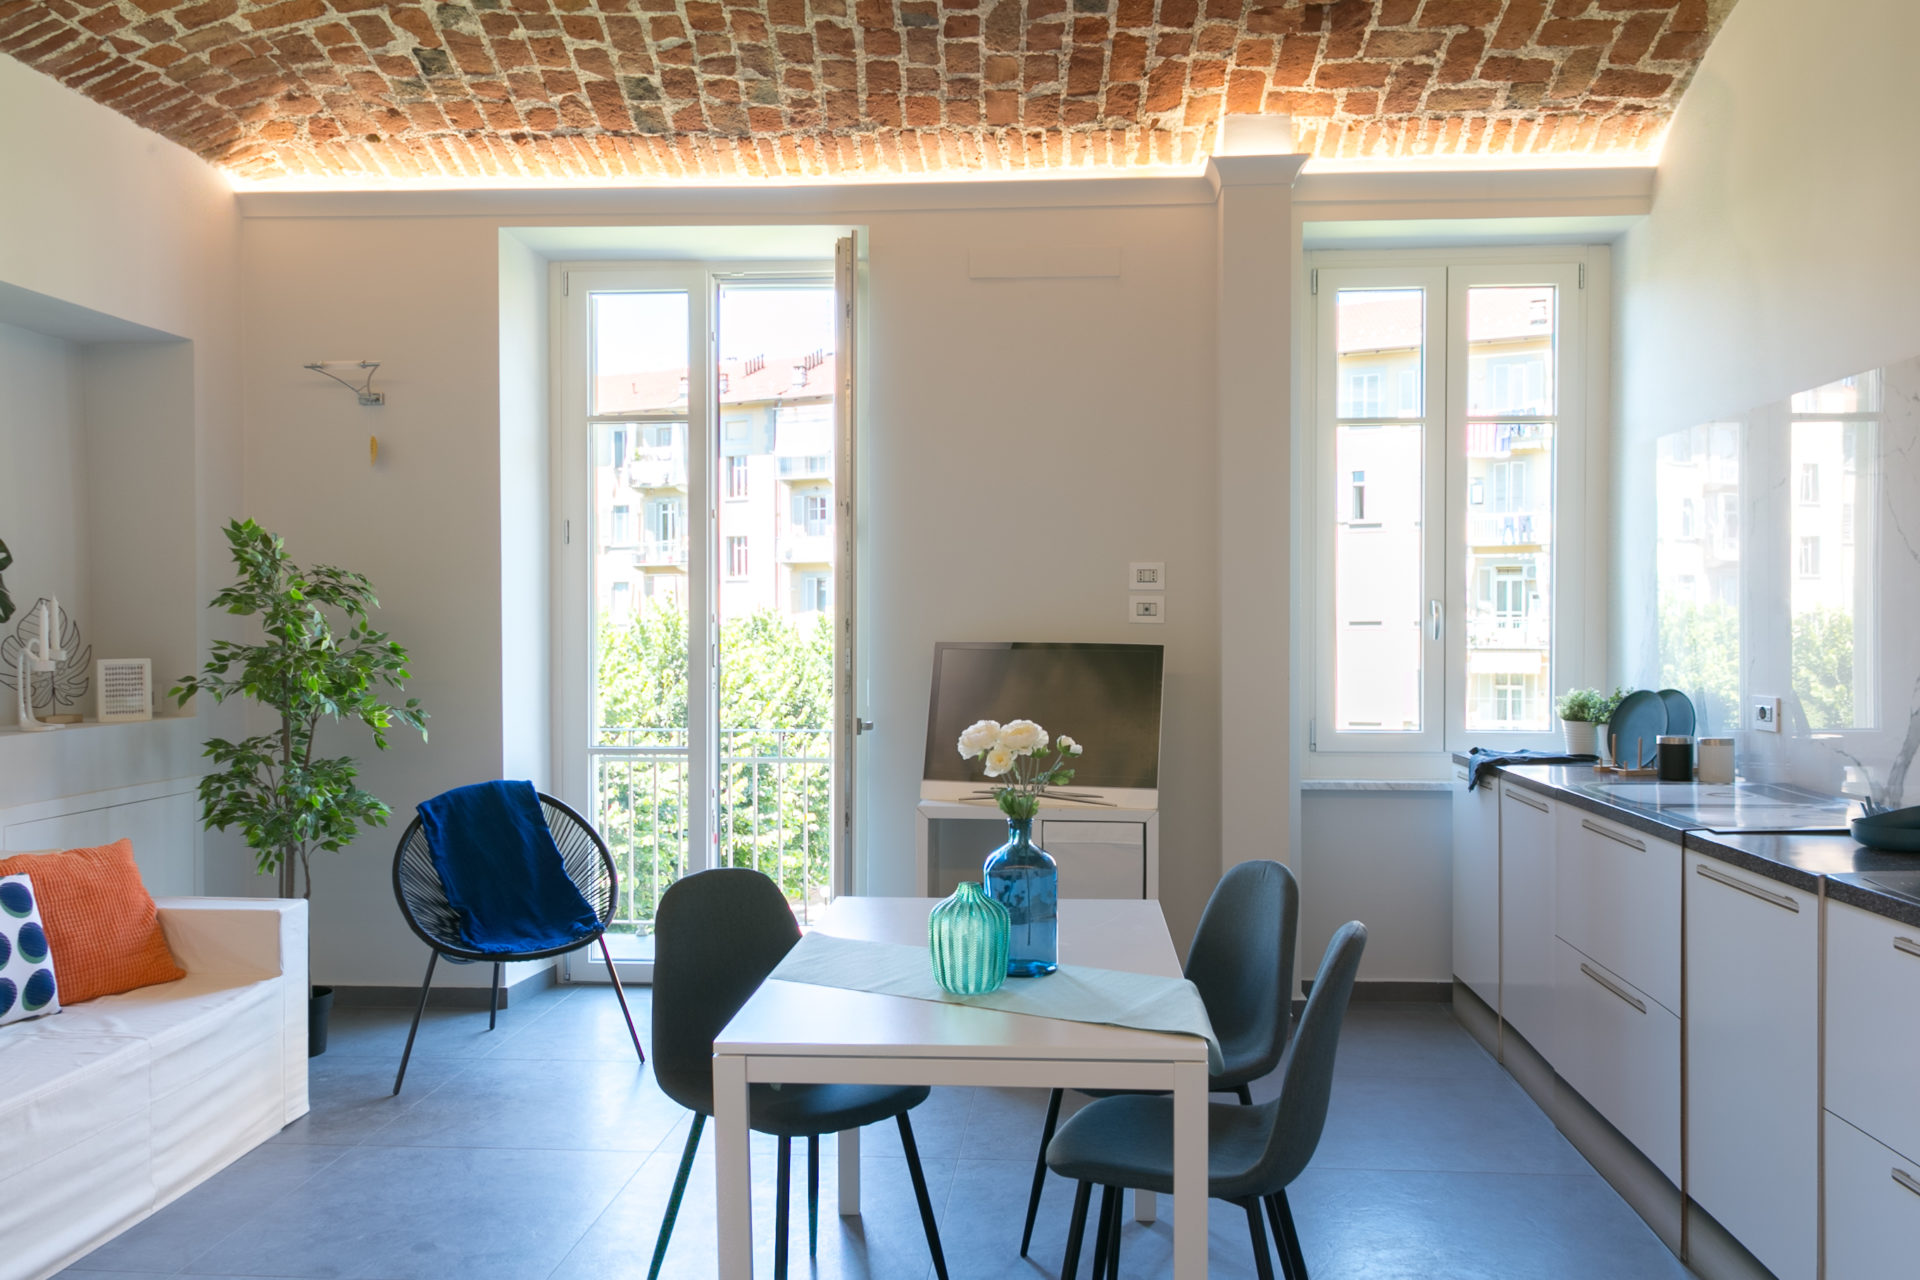 homeonstage-home-staging-casa-frejus_06